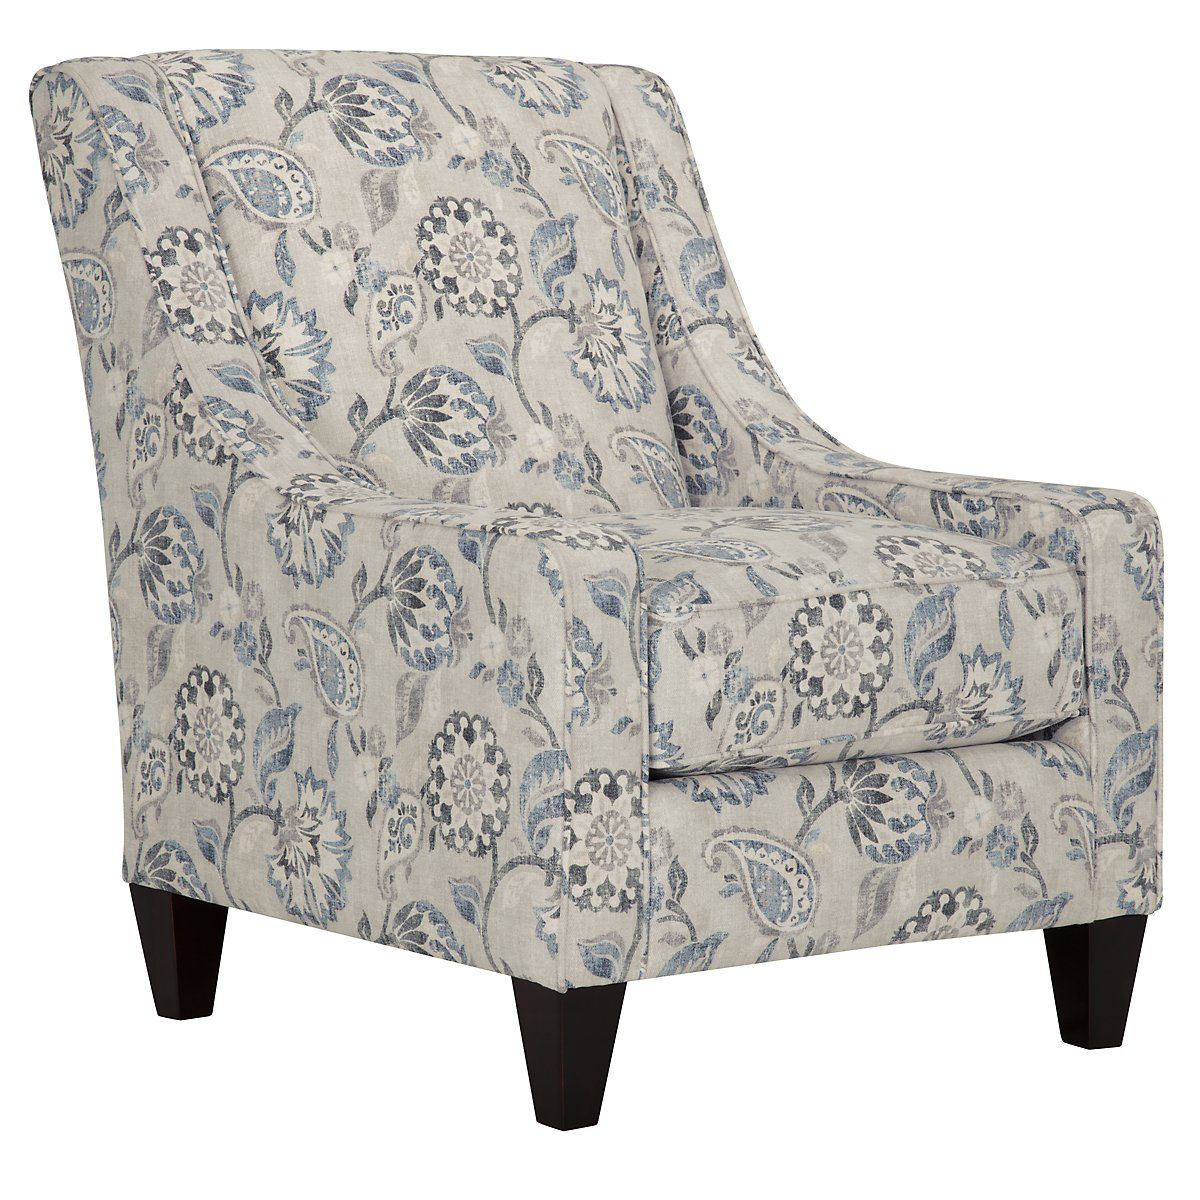 Blue Patterned Chair Sylvie Blue Fabric Accent Chair Living Room Accent Chairs